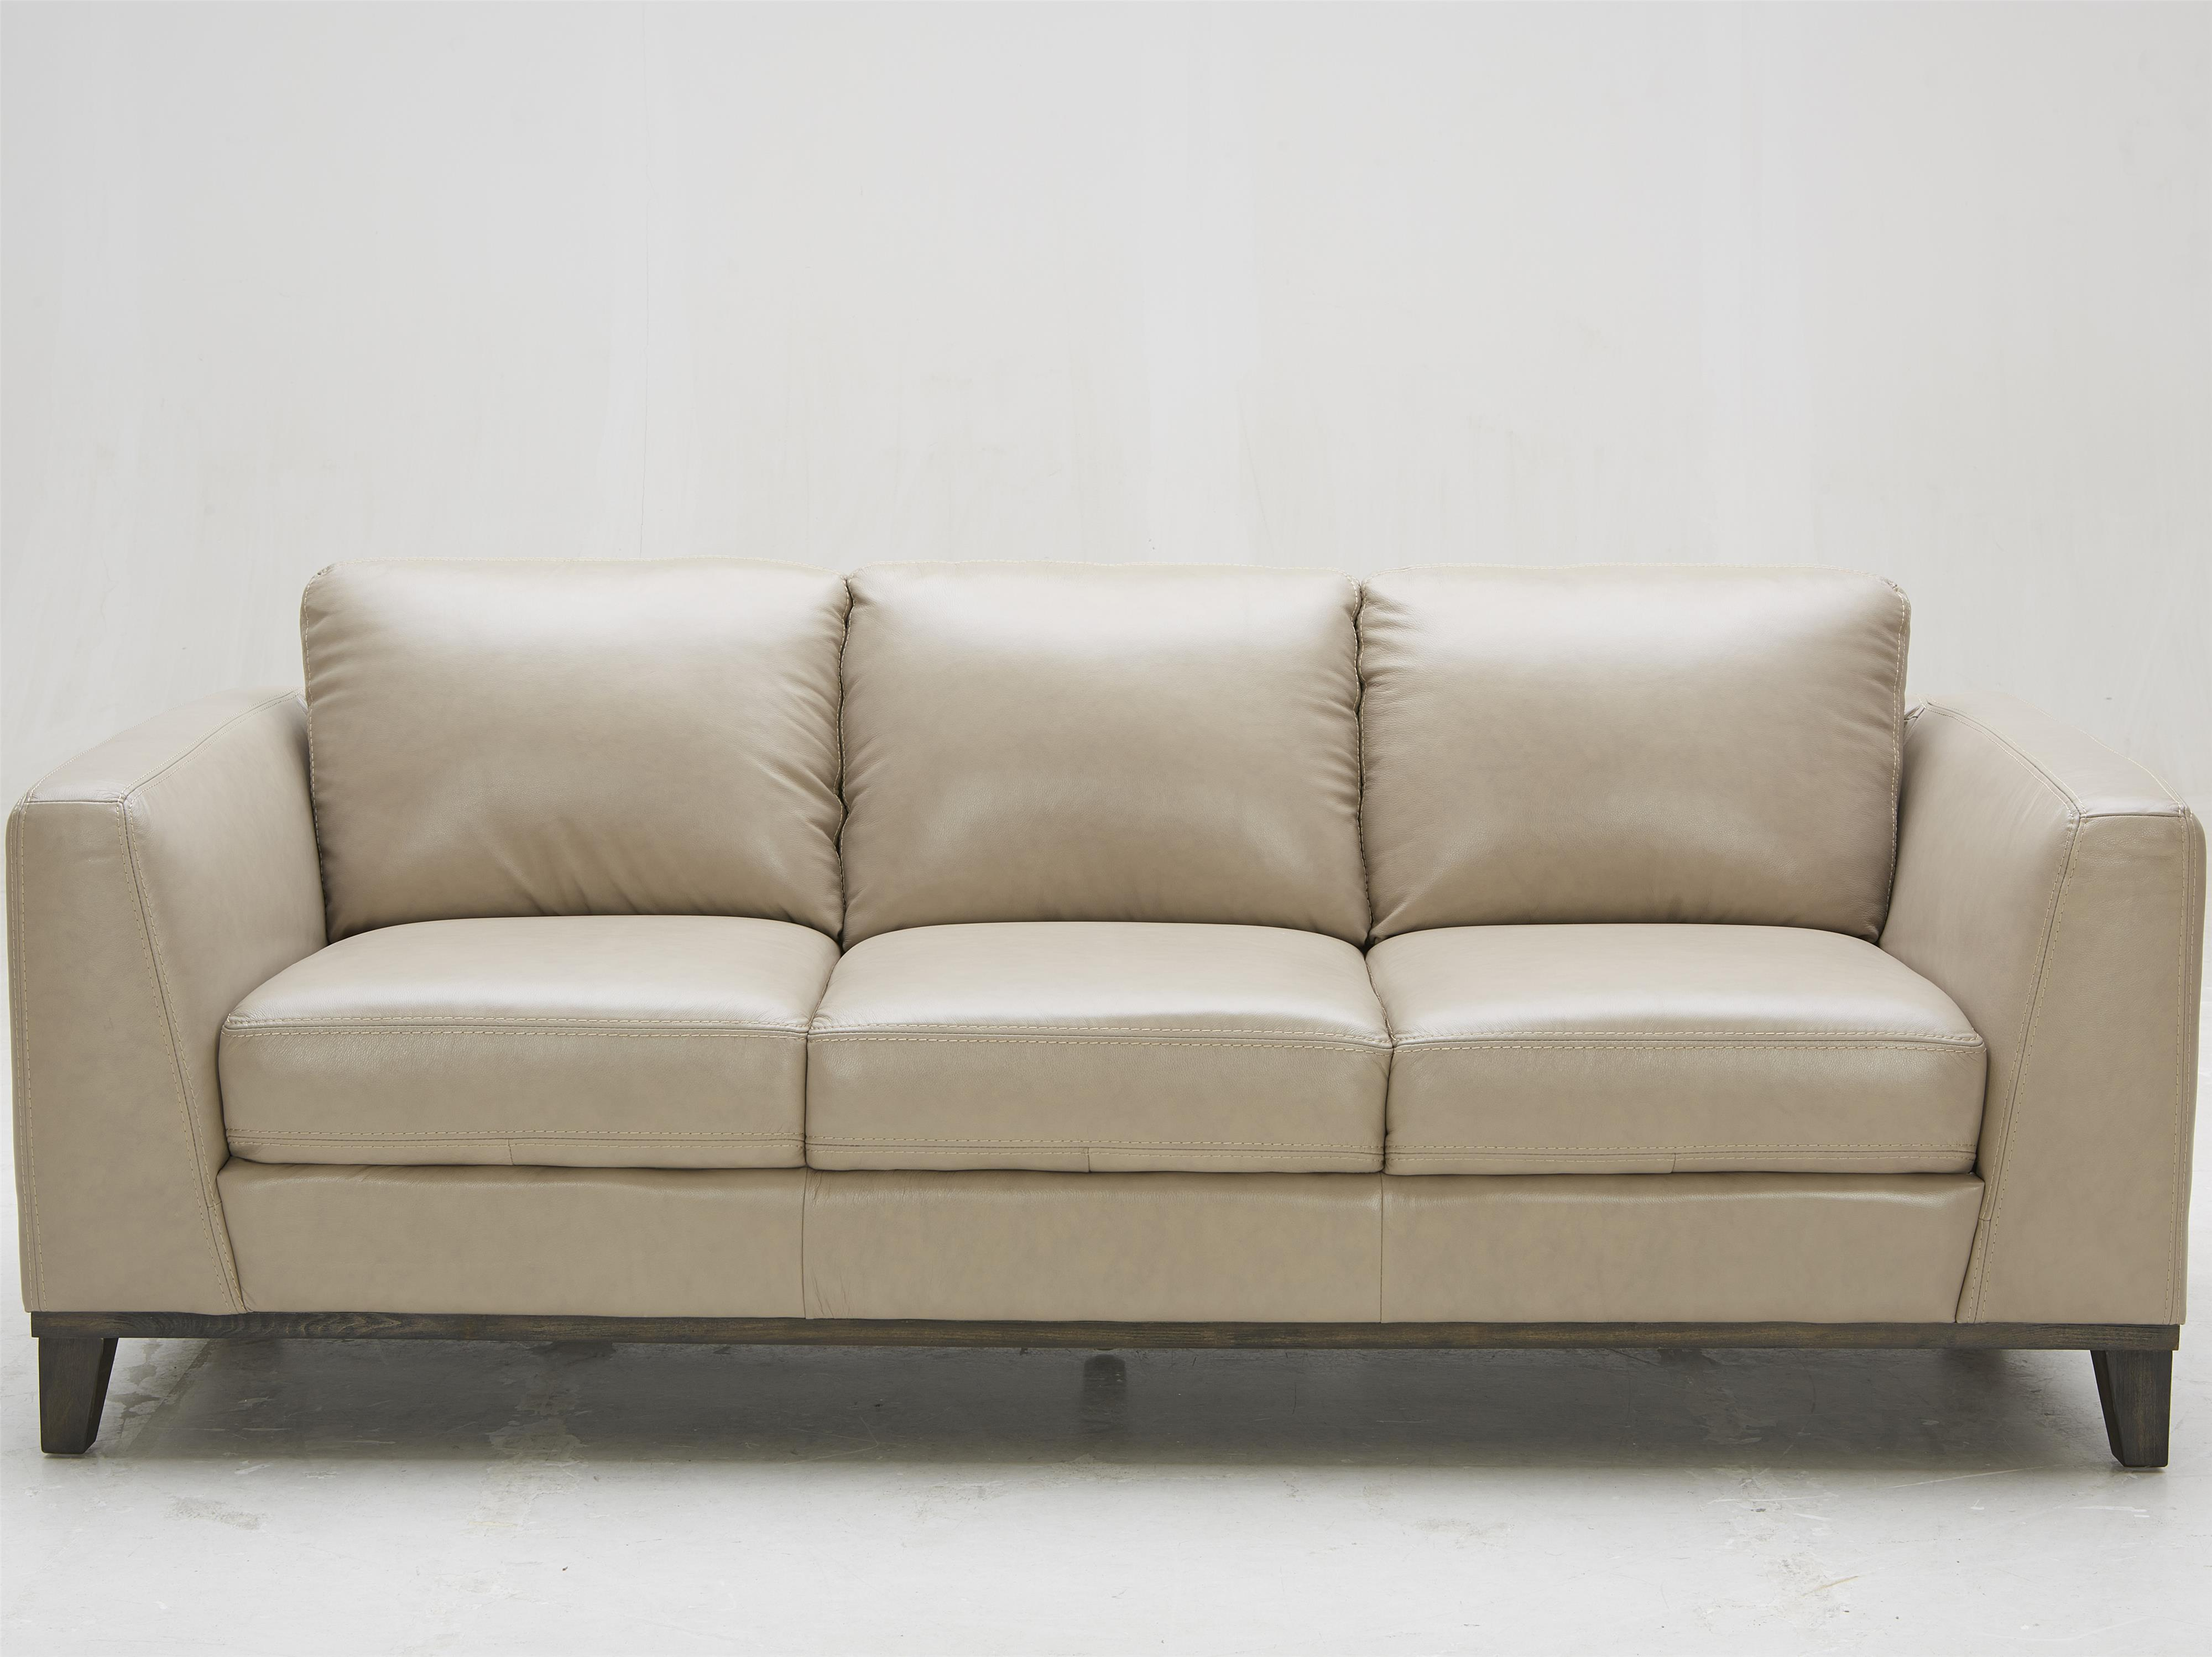 Urban Evolution Corbin Sofa - Item Number: 1839S-M2826-G030